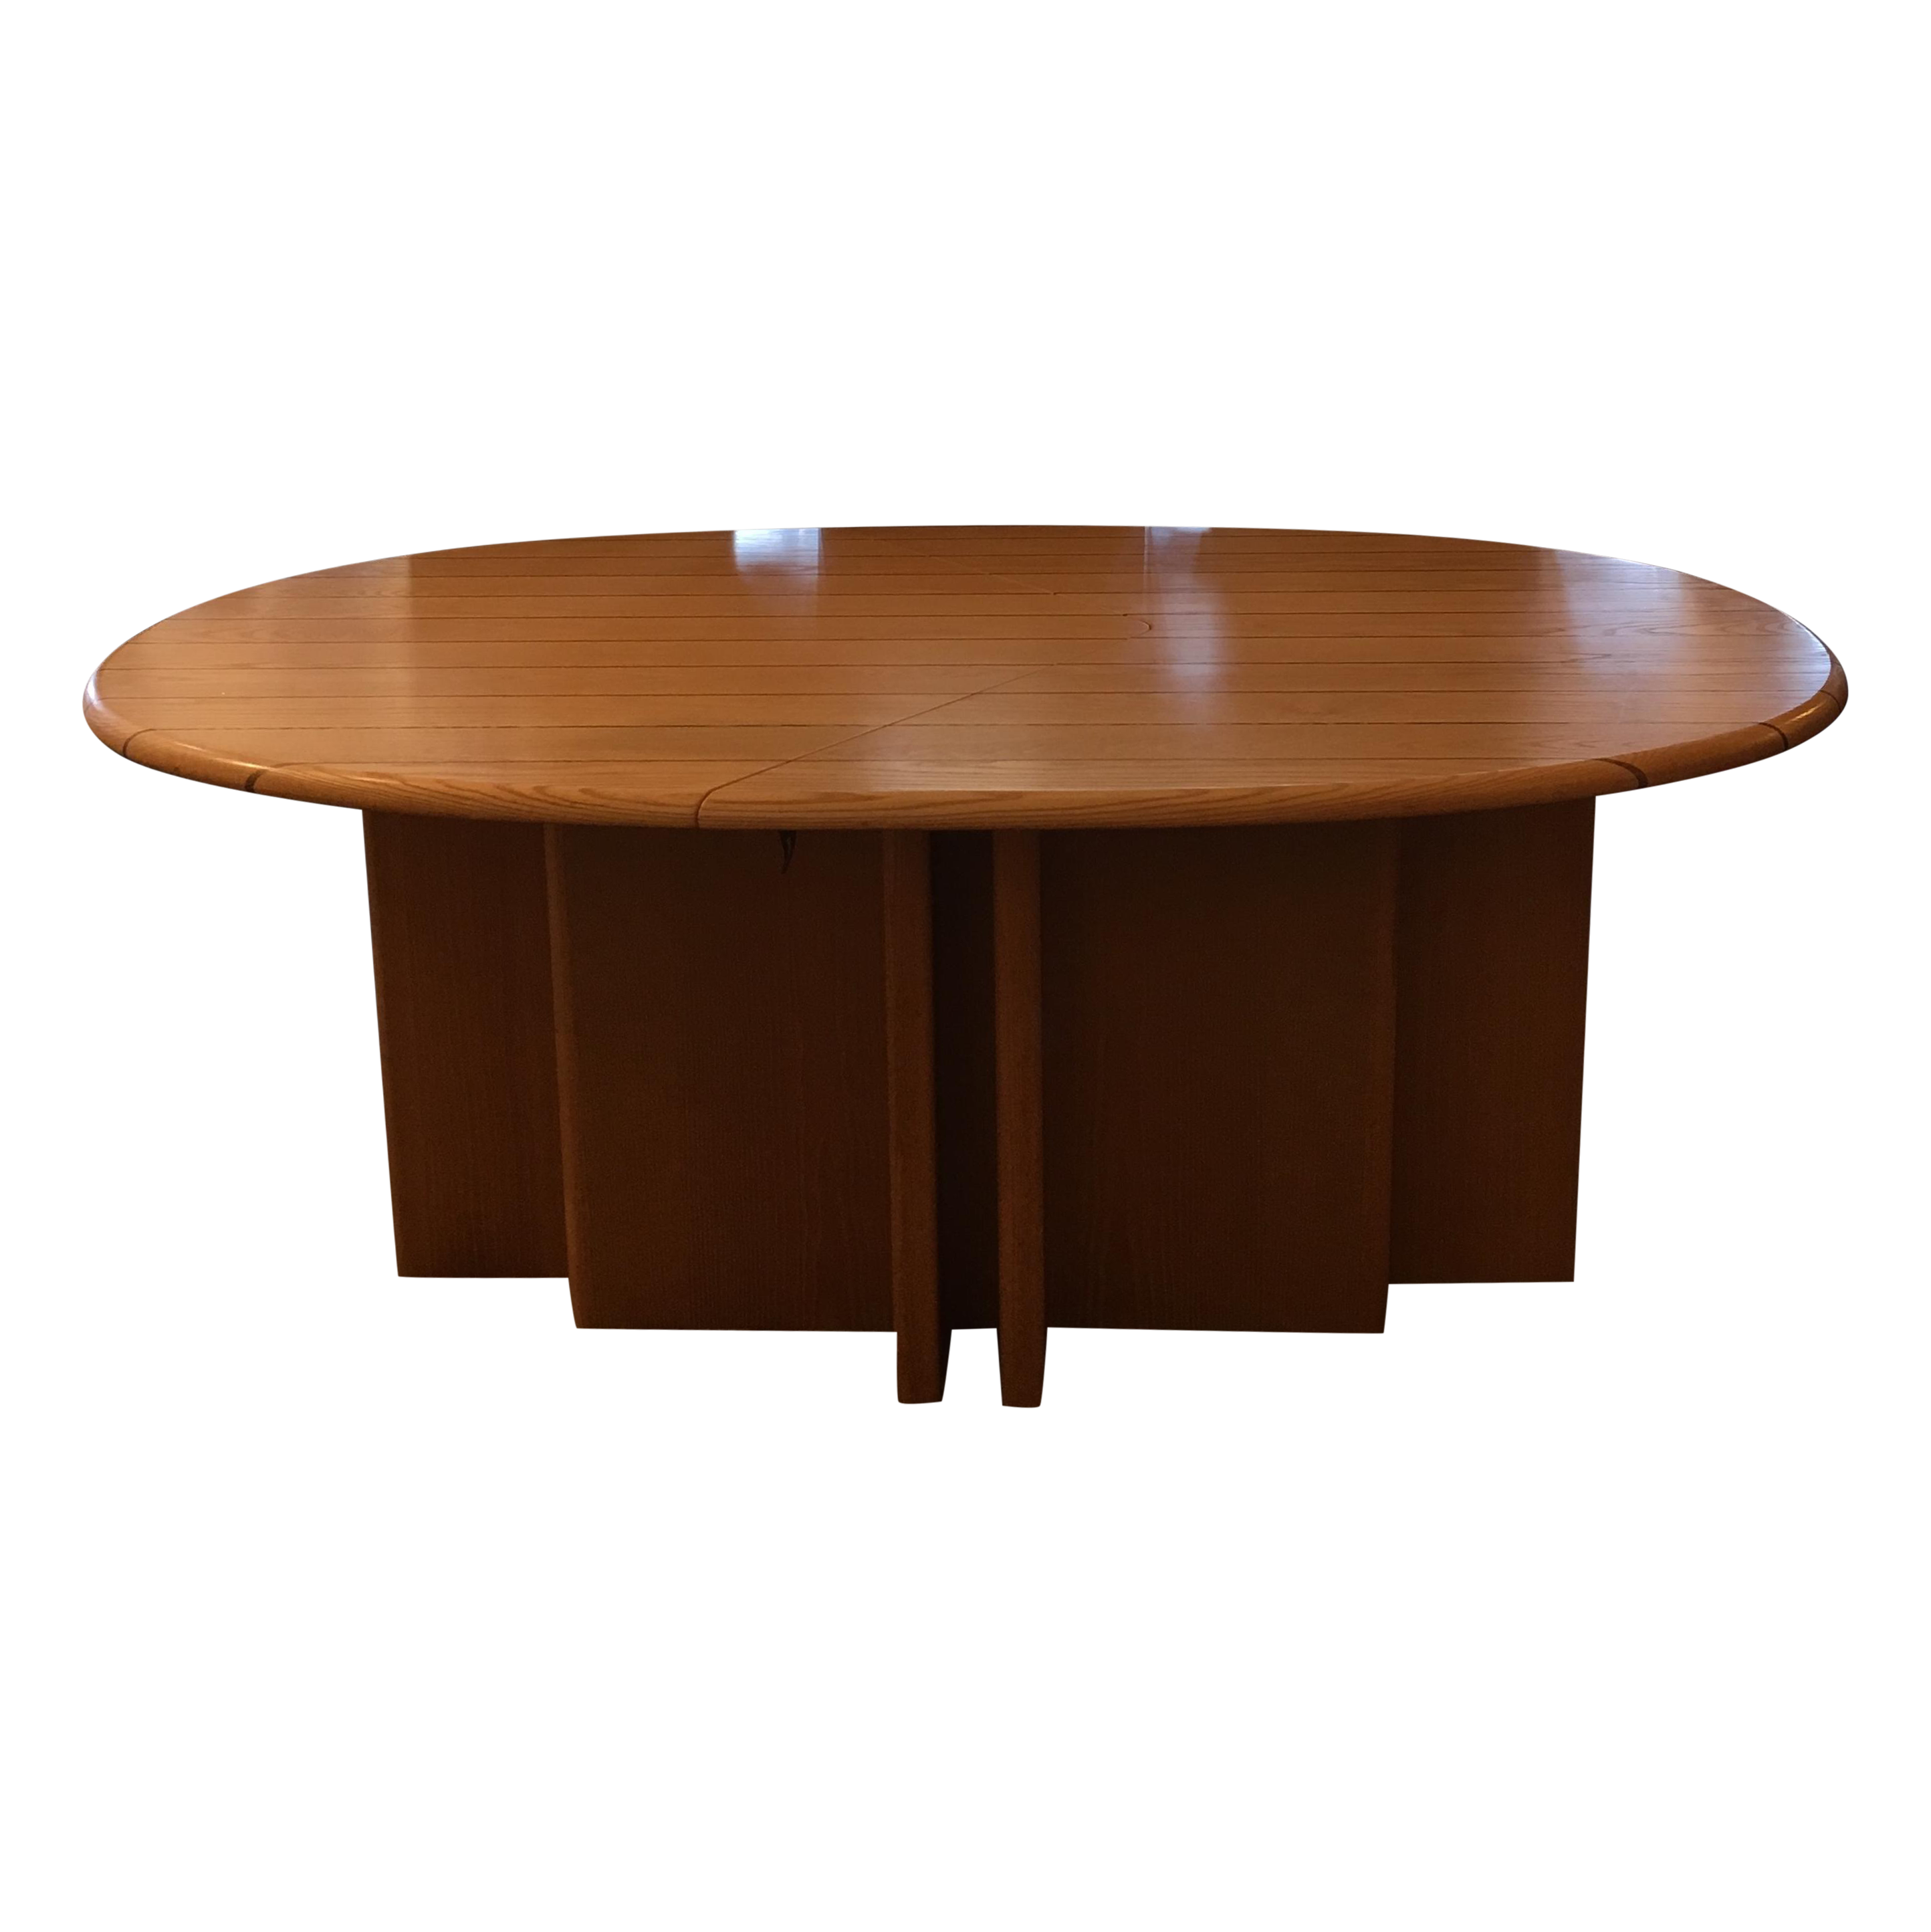 Scandinavian designs oval dining table 4 leaves chairish for Table design oval